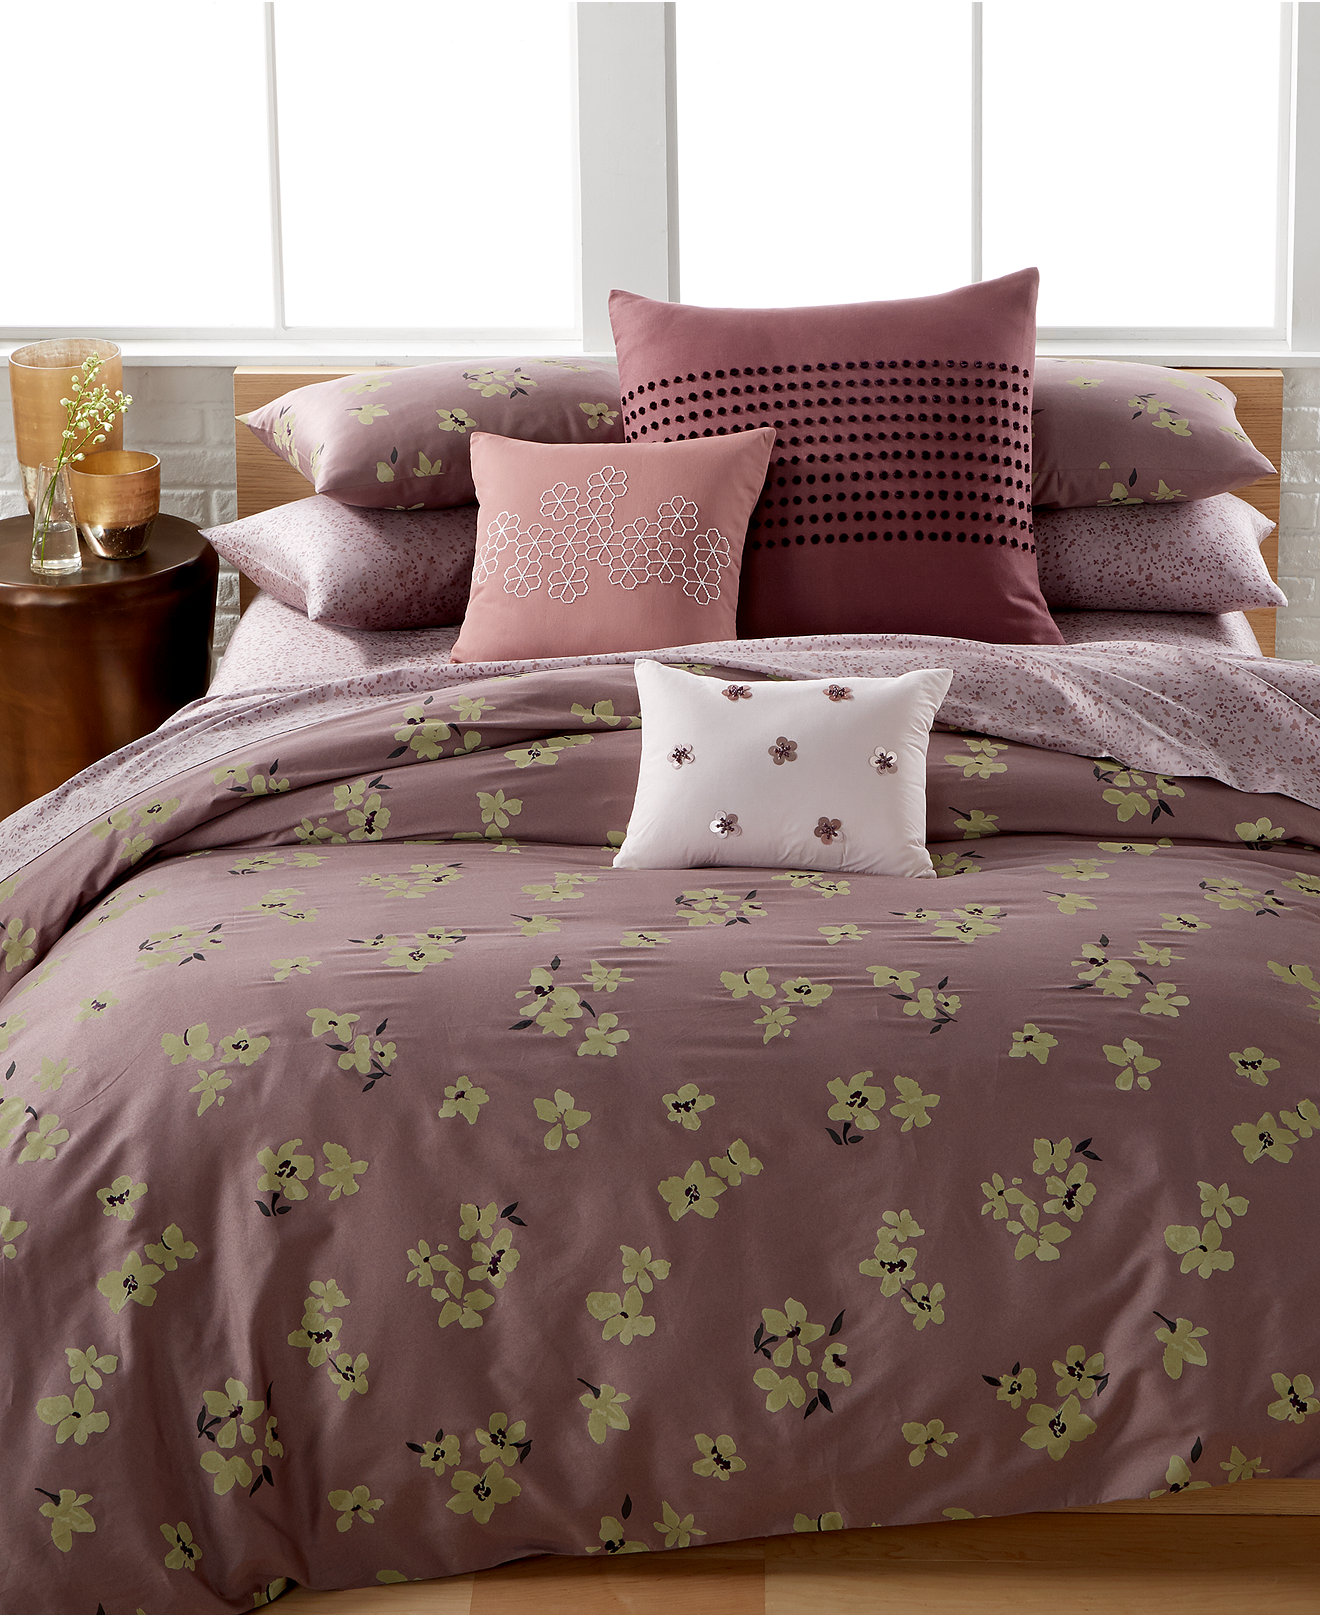 Bedding jardin collection bedding collections bed amp bath macy s - Calvin Klein Bedding And Bath Macys Klein Kitchen And Bath